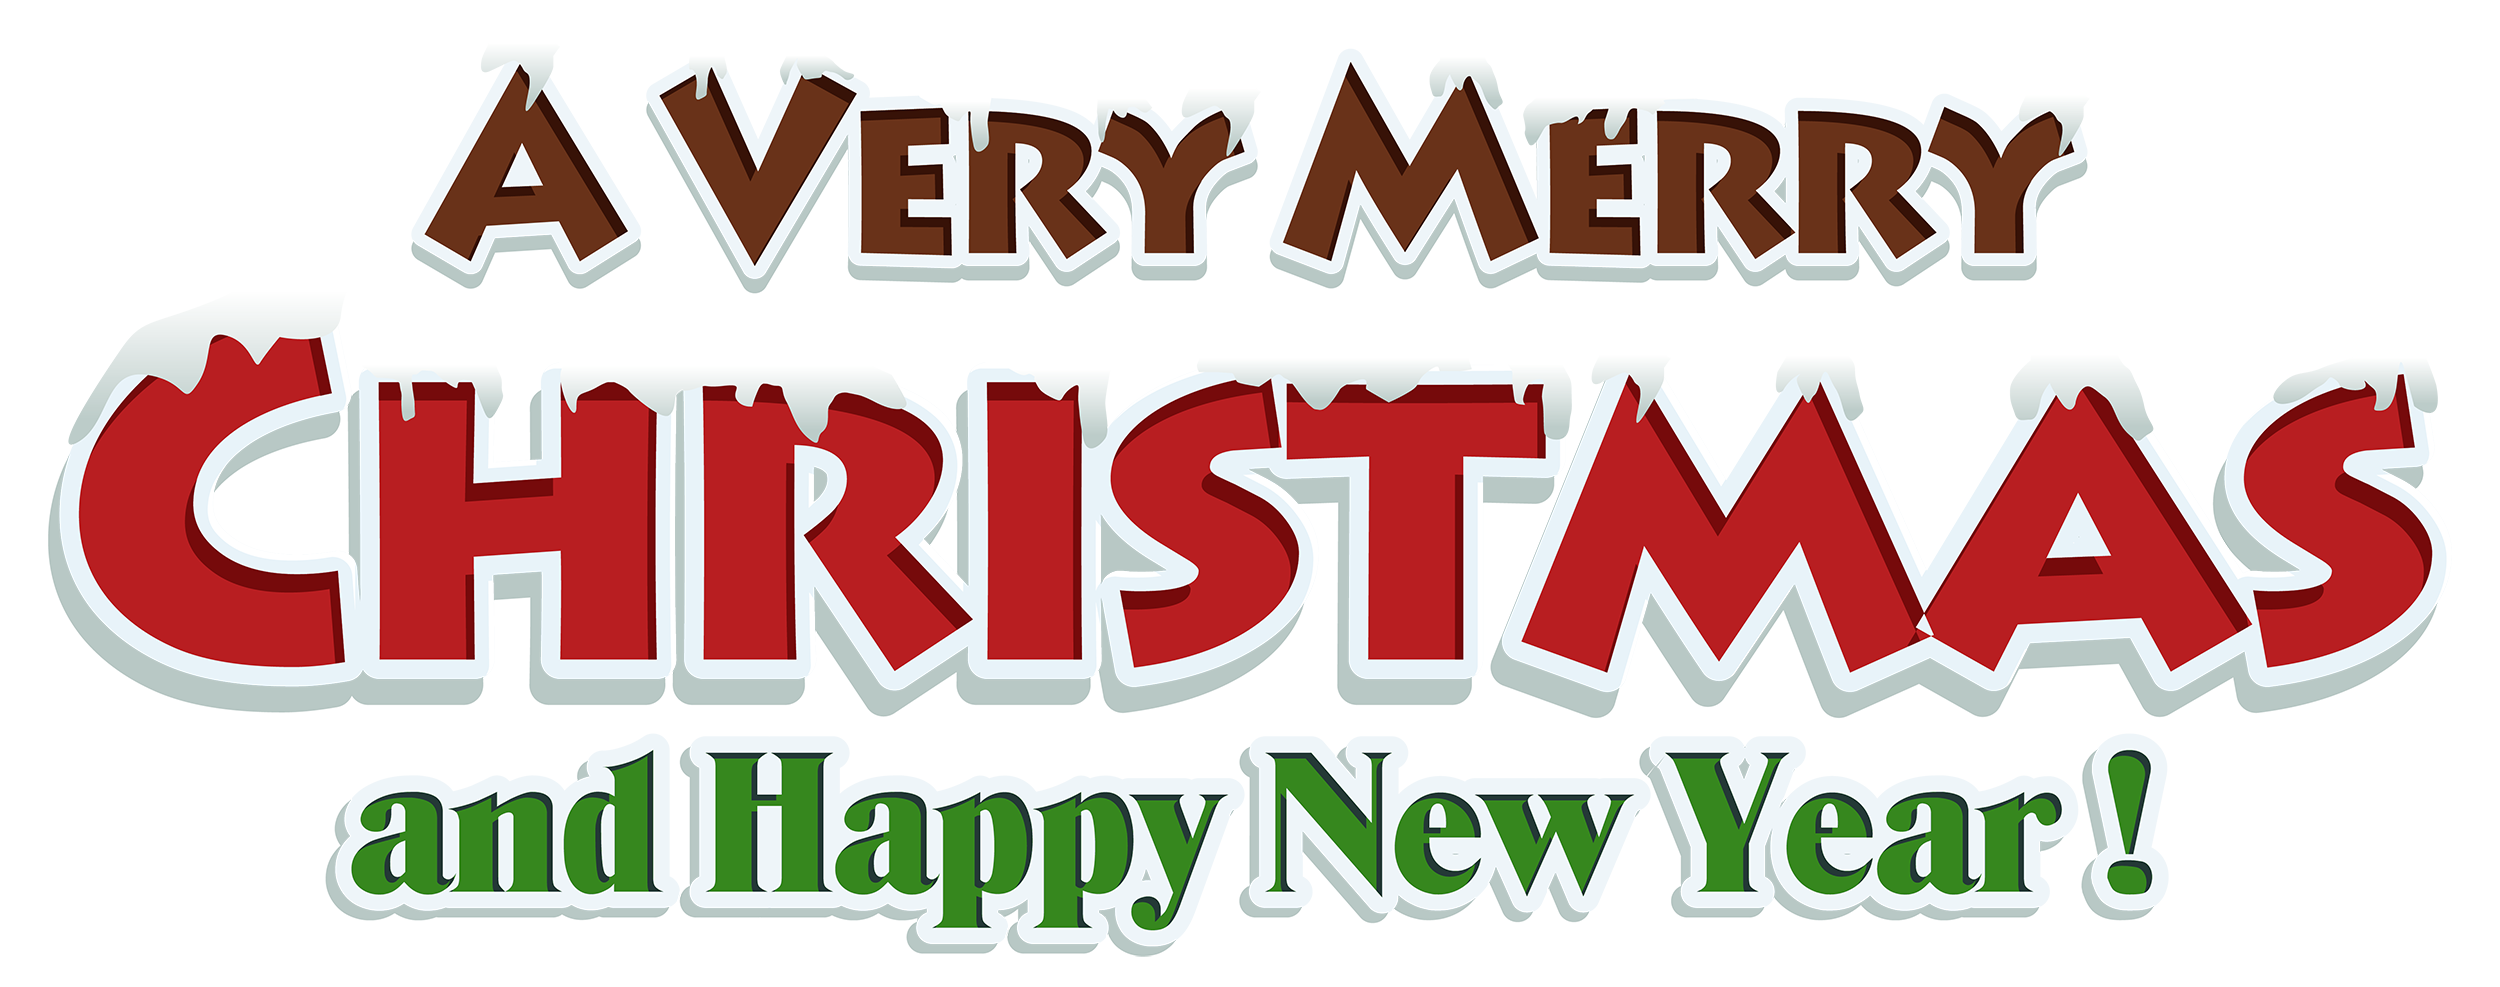 Happy holidays transparent png. Merry christmas text images